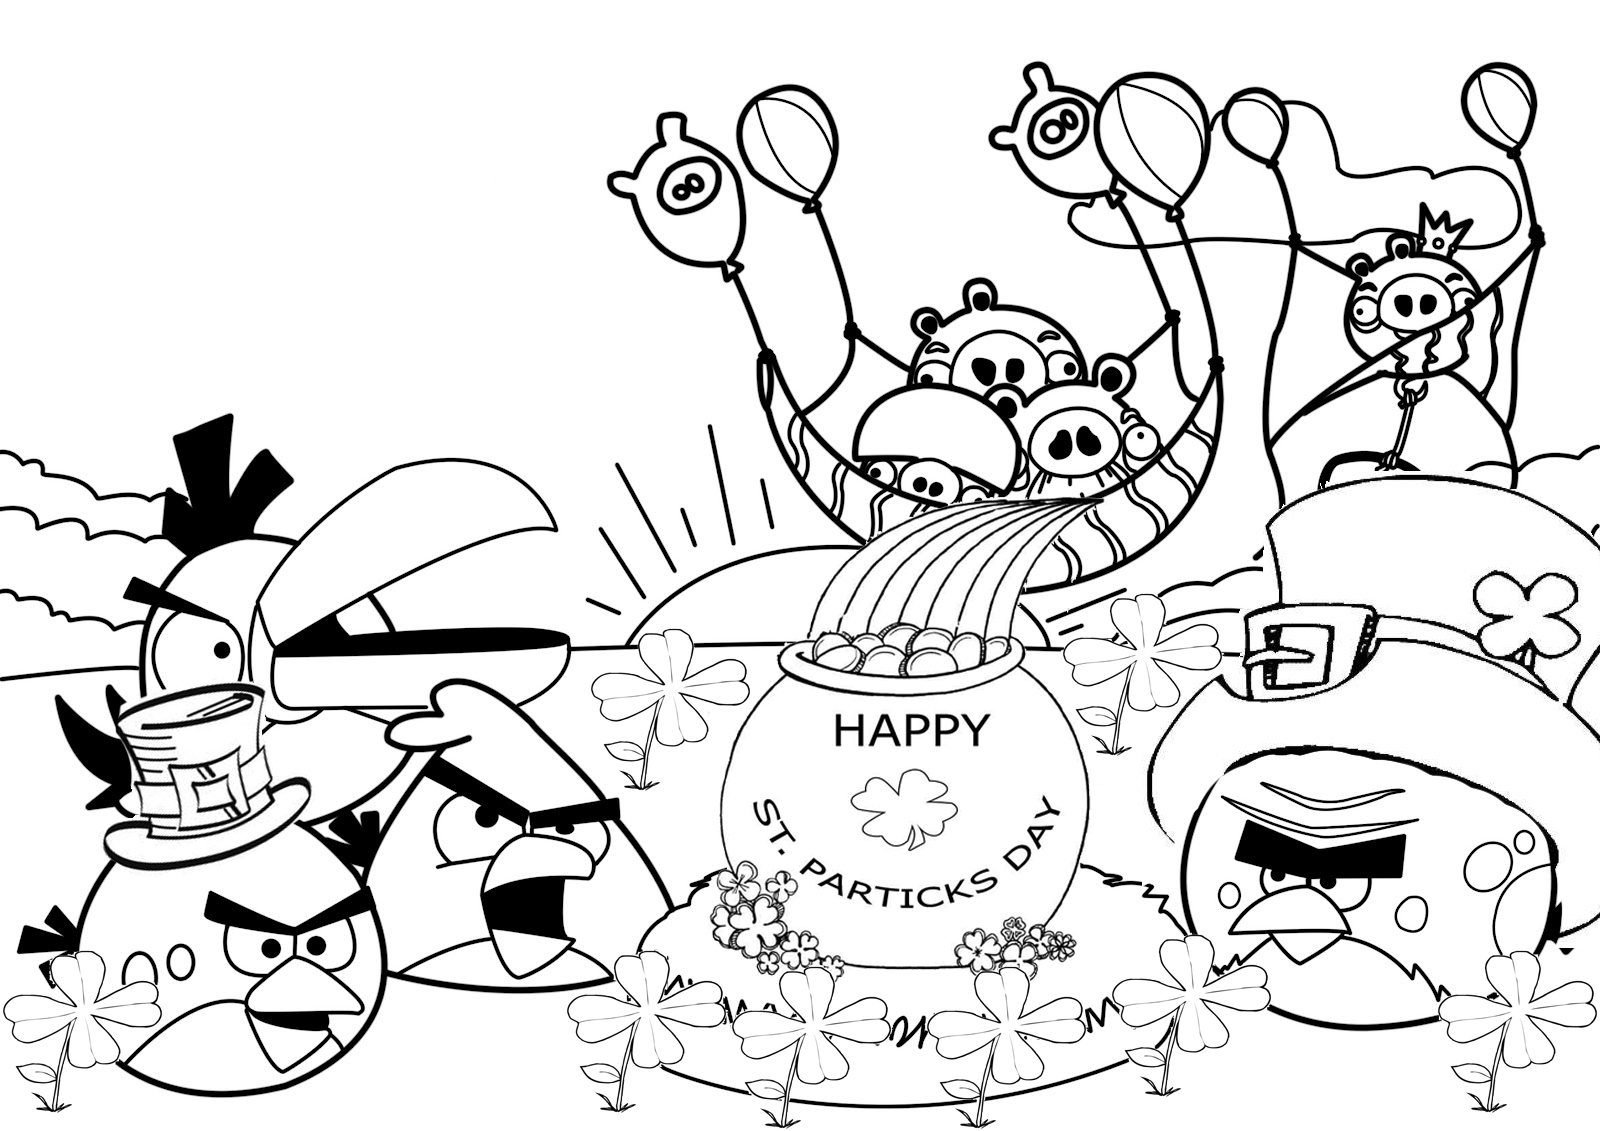 Angry Birds Saint Patrick's Day coloring Pages